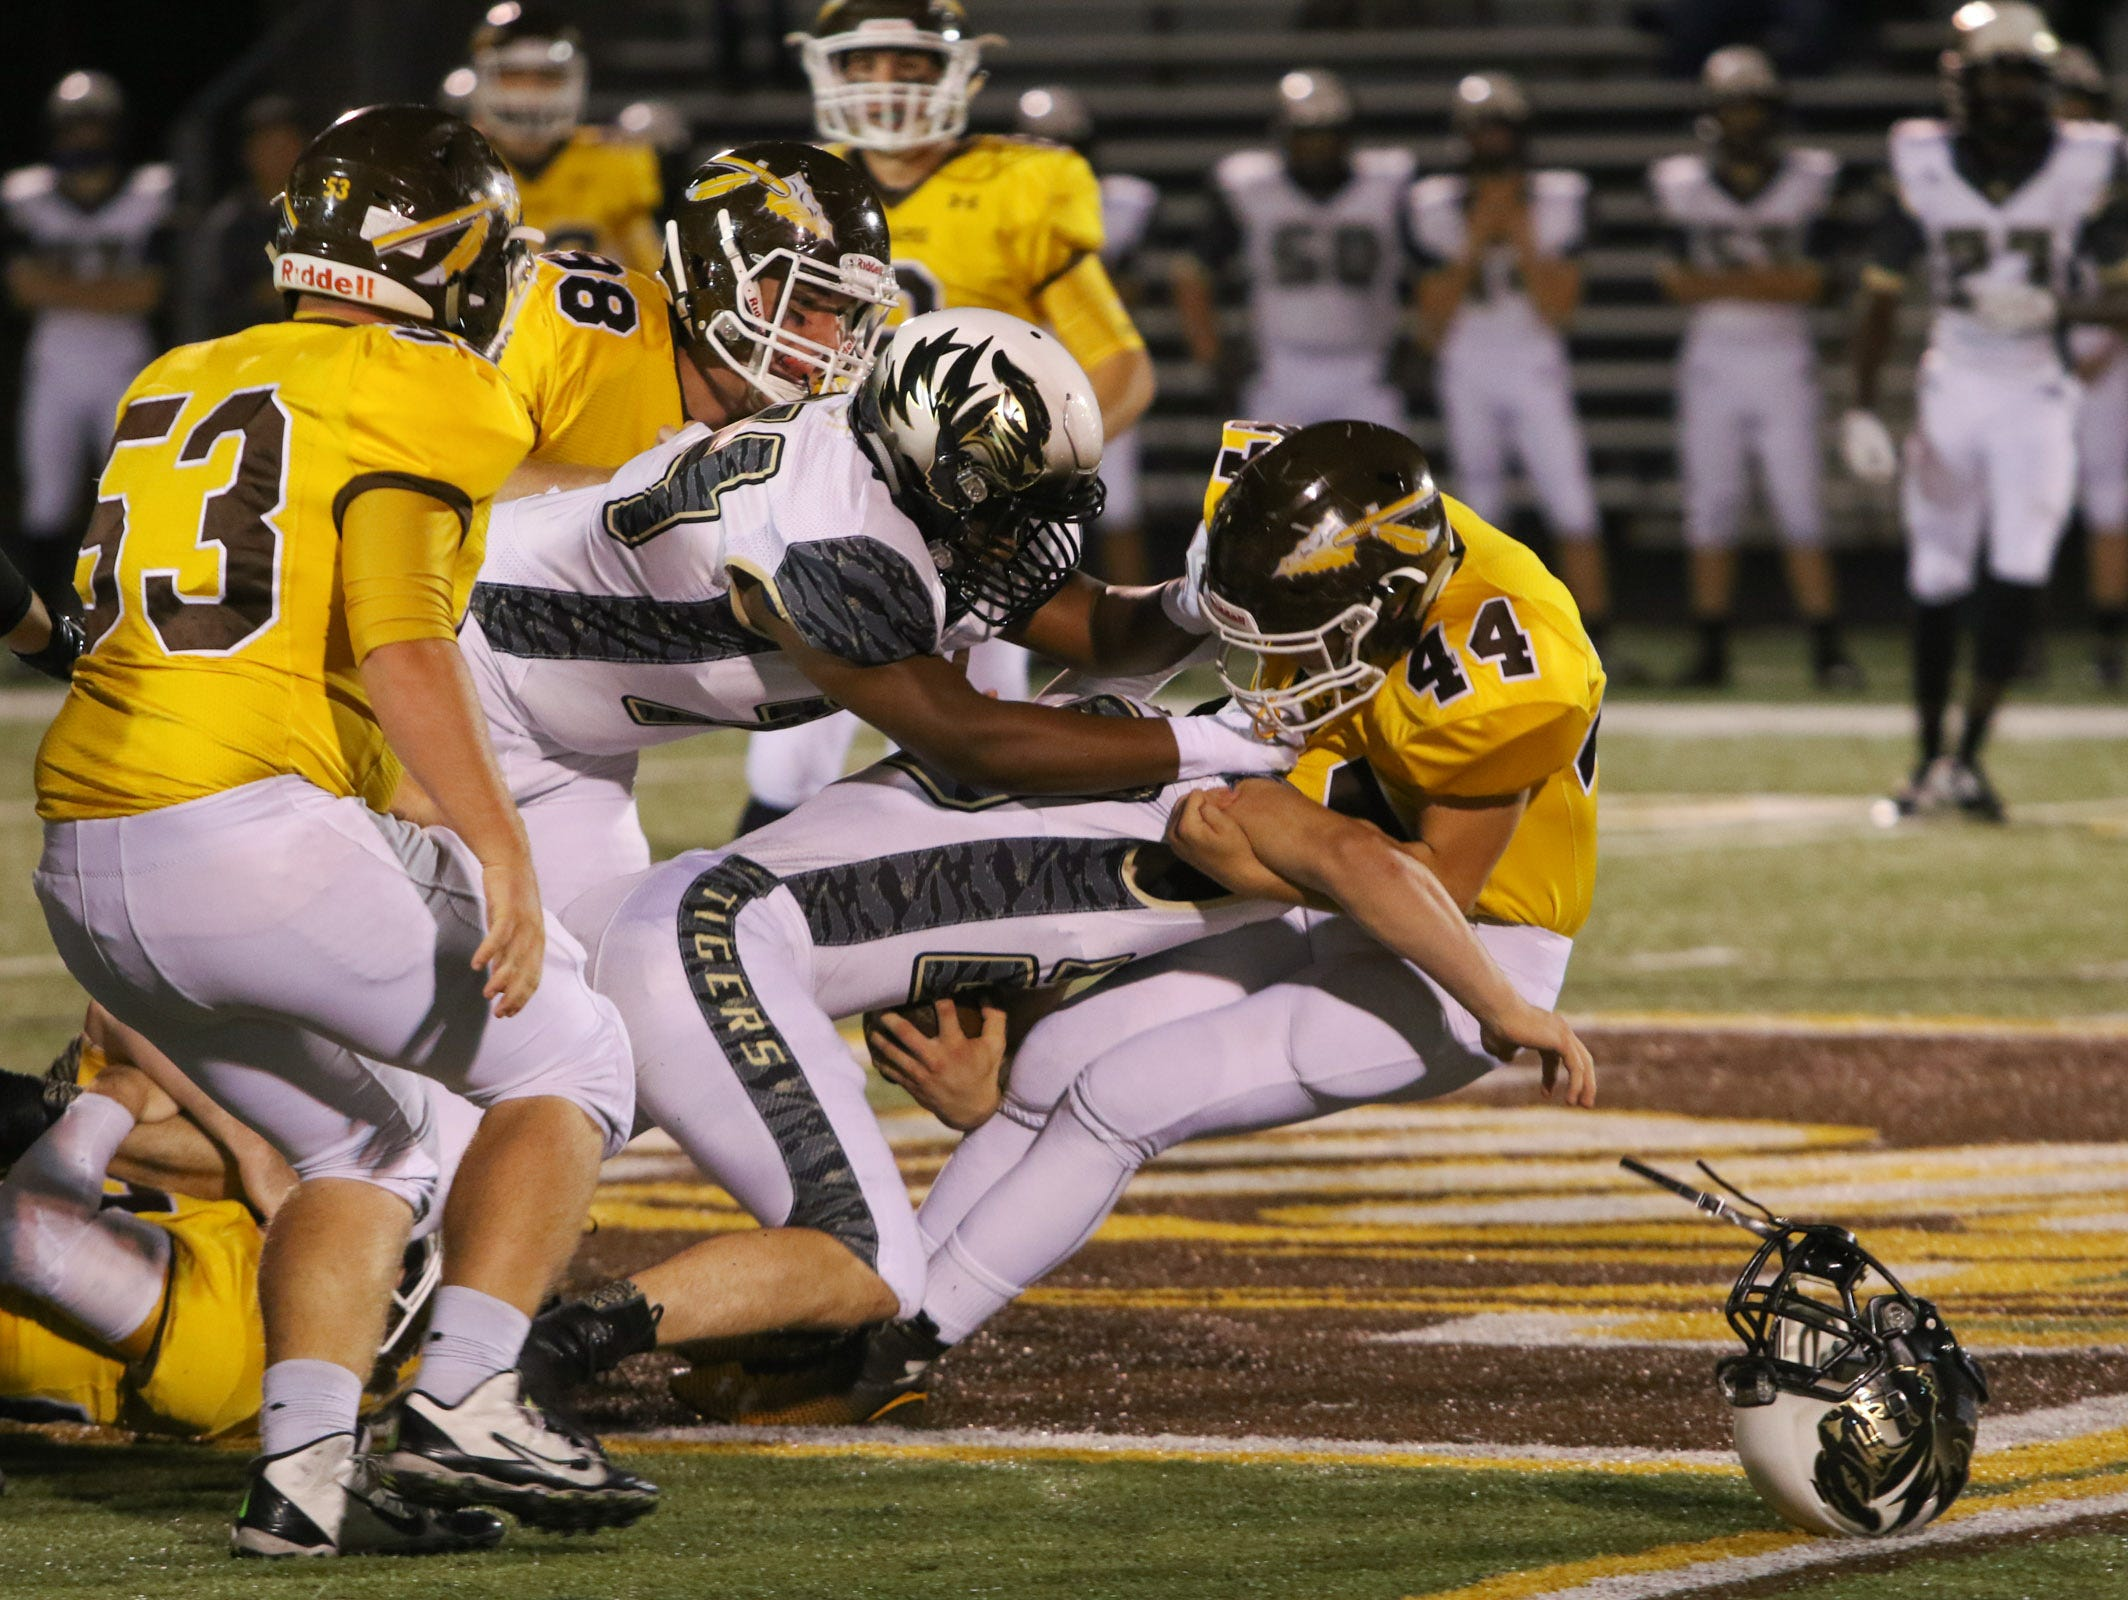 Kickapoo High School linebacker Tre Woodring forces down Lee's Summit High School's offense Friday, October 23, 2015. Jason Connel / For the News-Leader